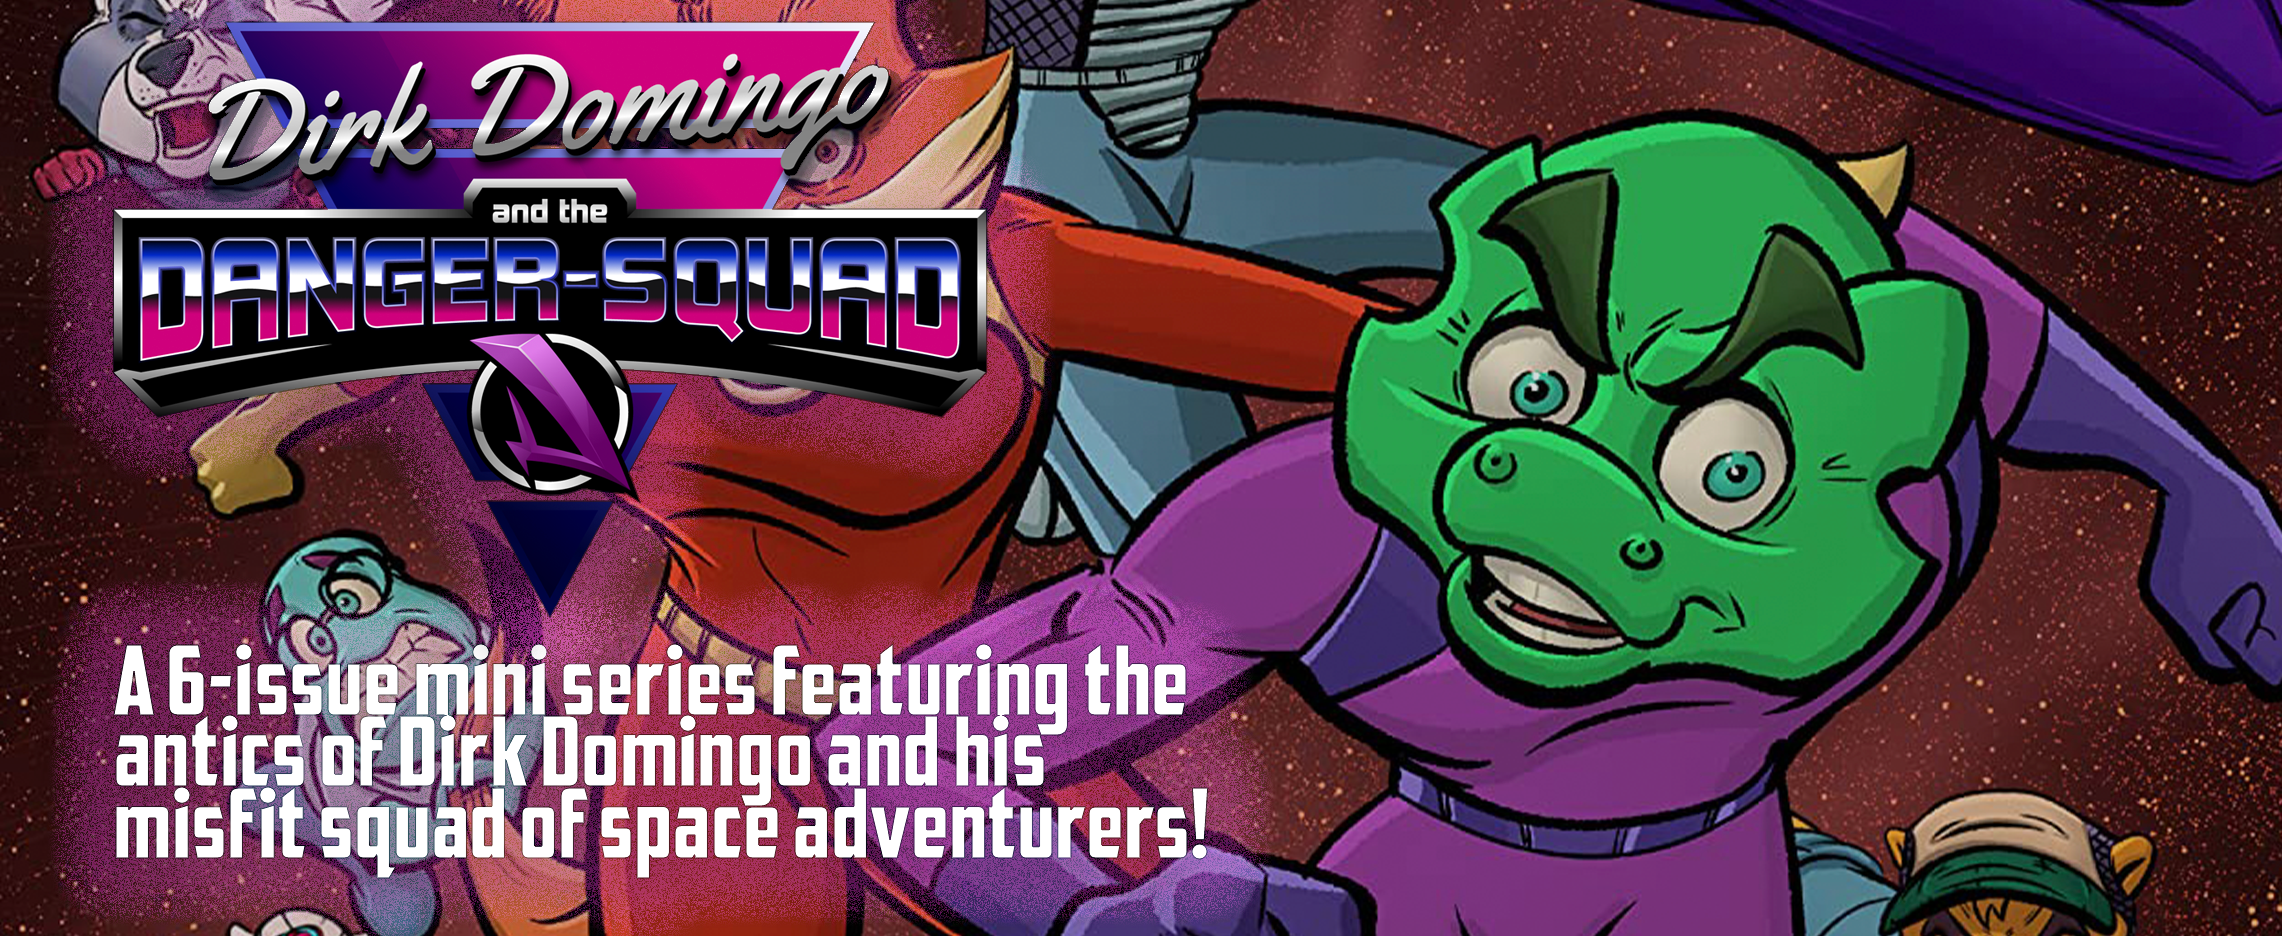 """Dirk Domingo and the Danger-Squad preview image. It says, """"a six-issue mini series featuring the antics of Dirk Domingo and his misfit squad of space adventurers!"""""""